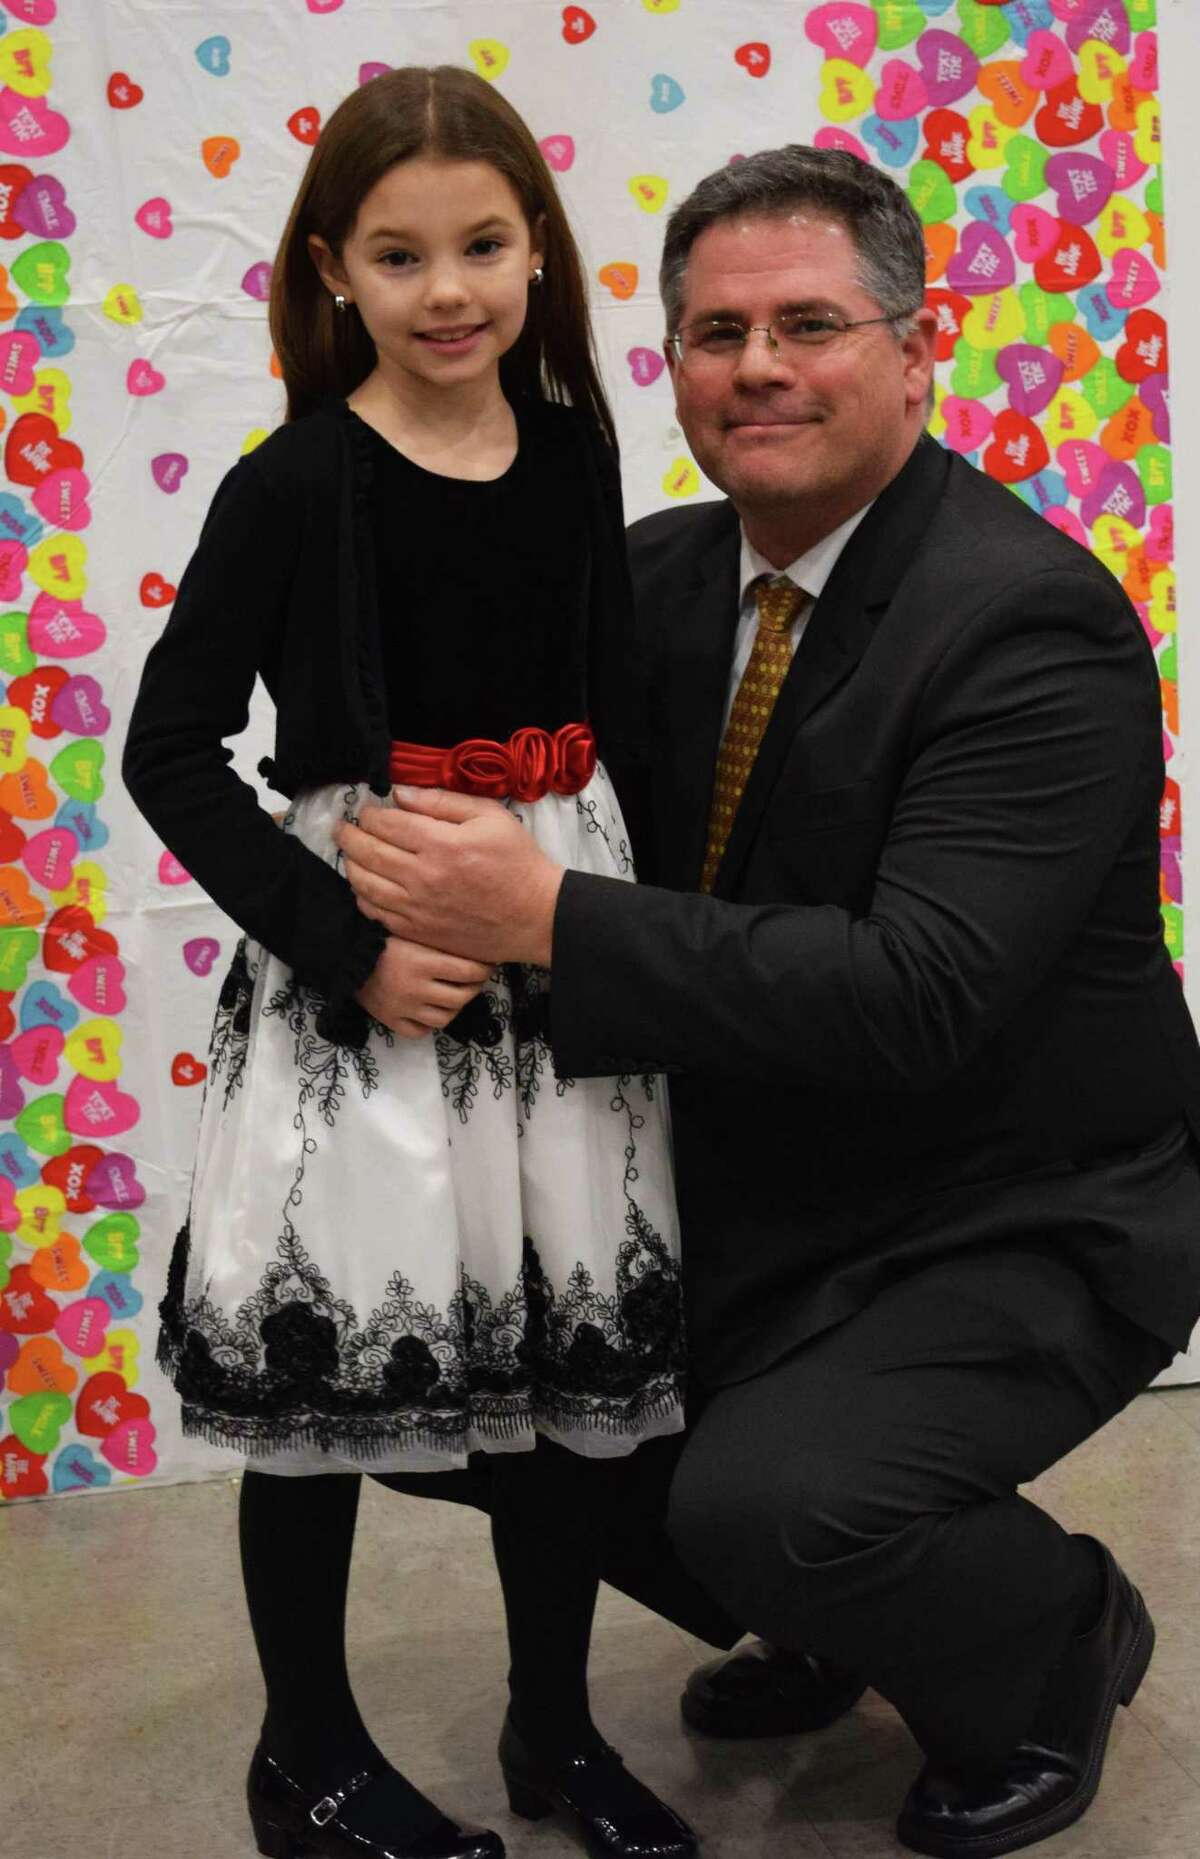 Spectrum/Fred Peloso and his daughter, Samantha, 10, pause to have their photo taken at the start of the New Milford Girl Scouts annual Sweetheart Dance, sponsored this year by Troop 40236, at New Milford High School Feb. 9, 2018.